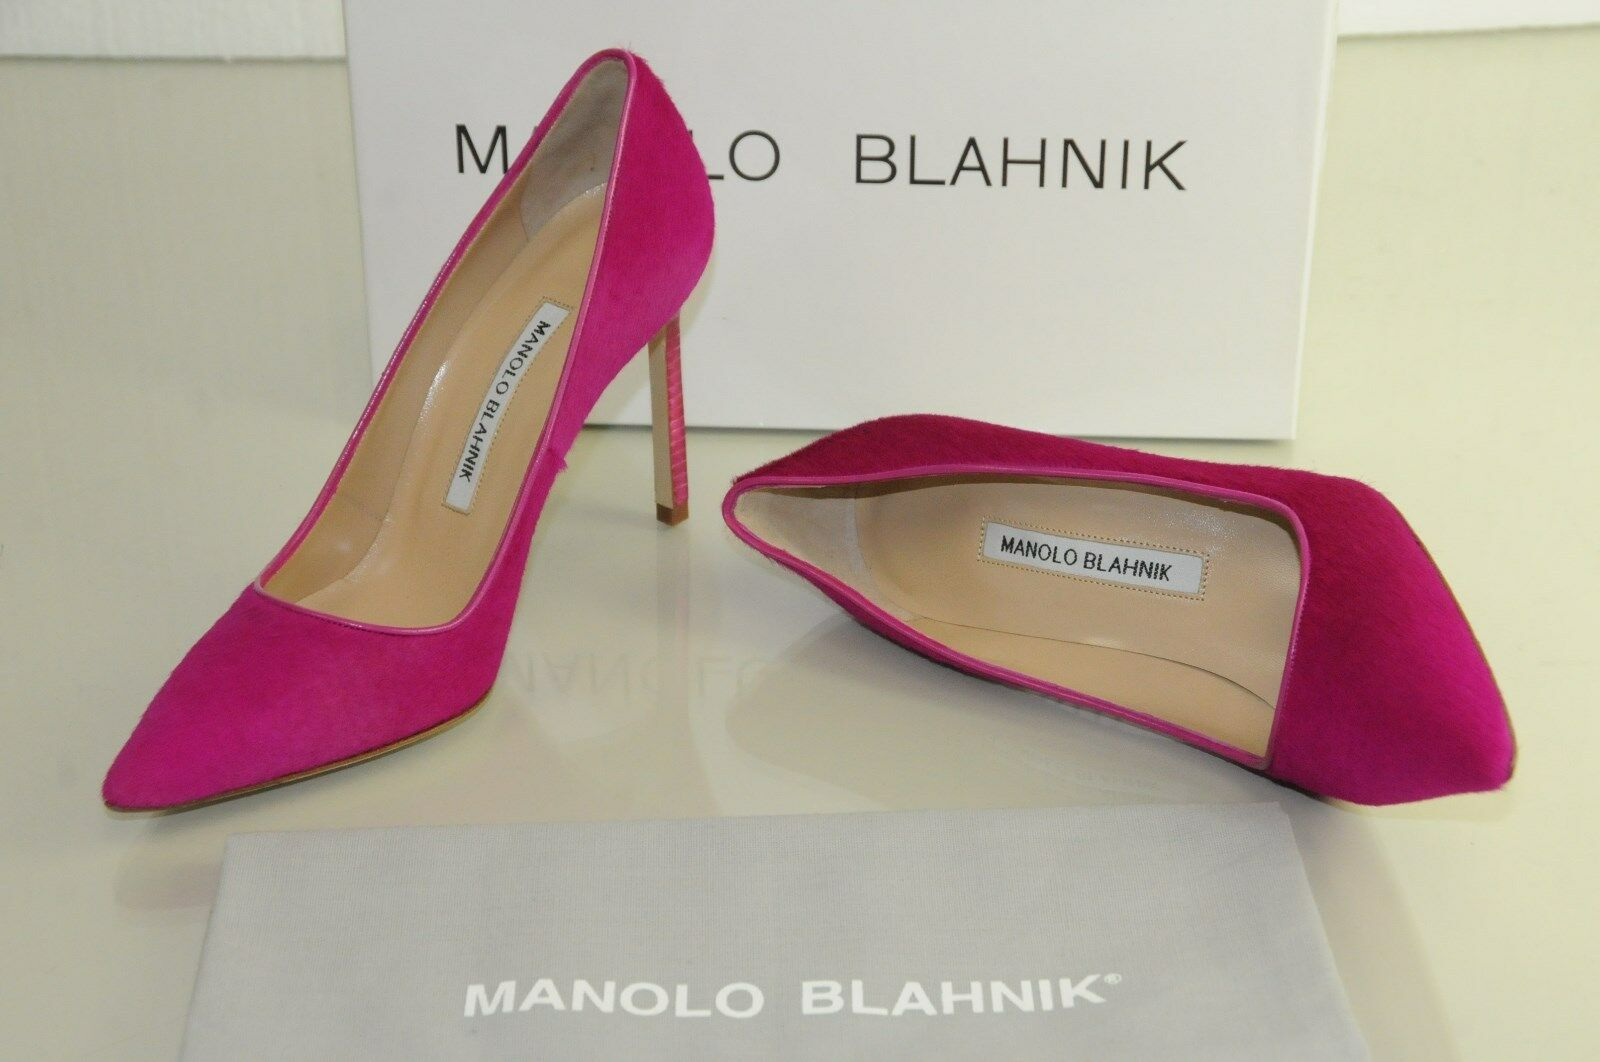 935 New Manolo Blahnik BB 105 Pink FUXIA Pony Hair Calf Pumps shoes 36 36.5 37